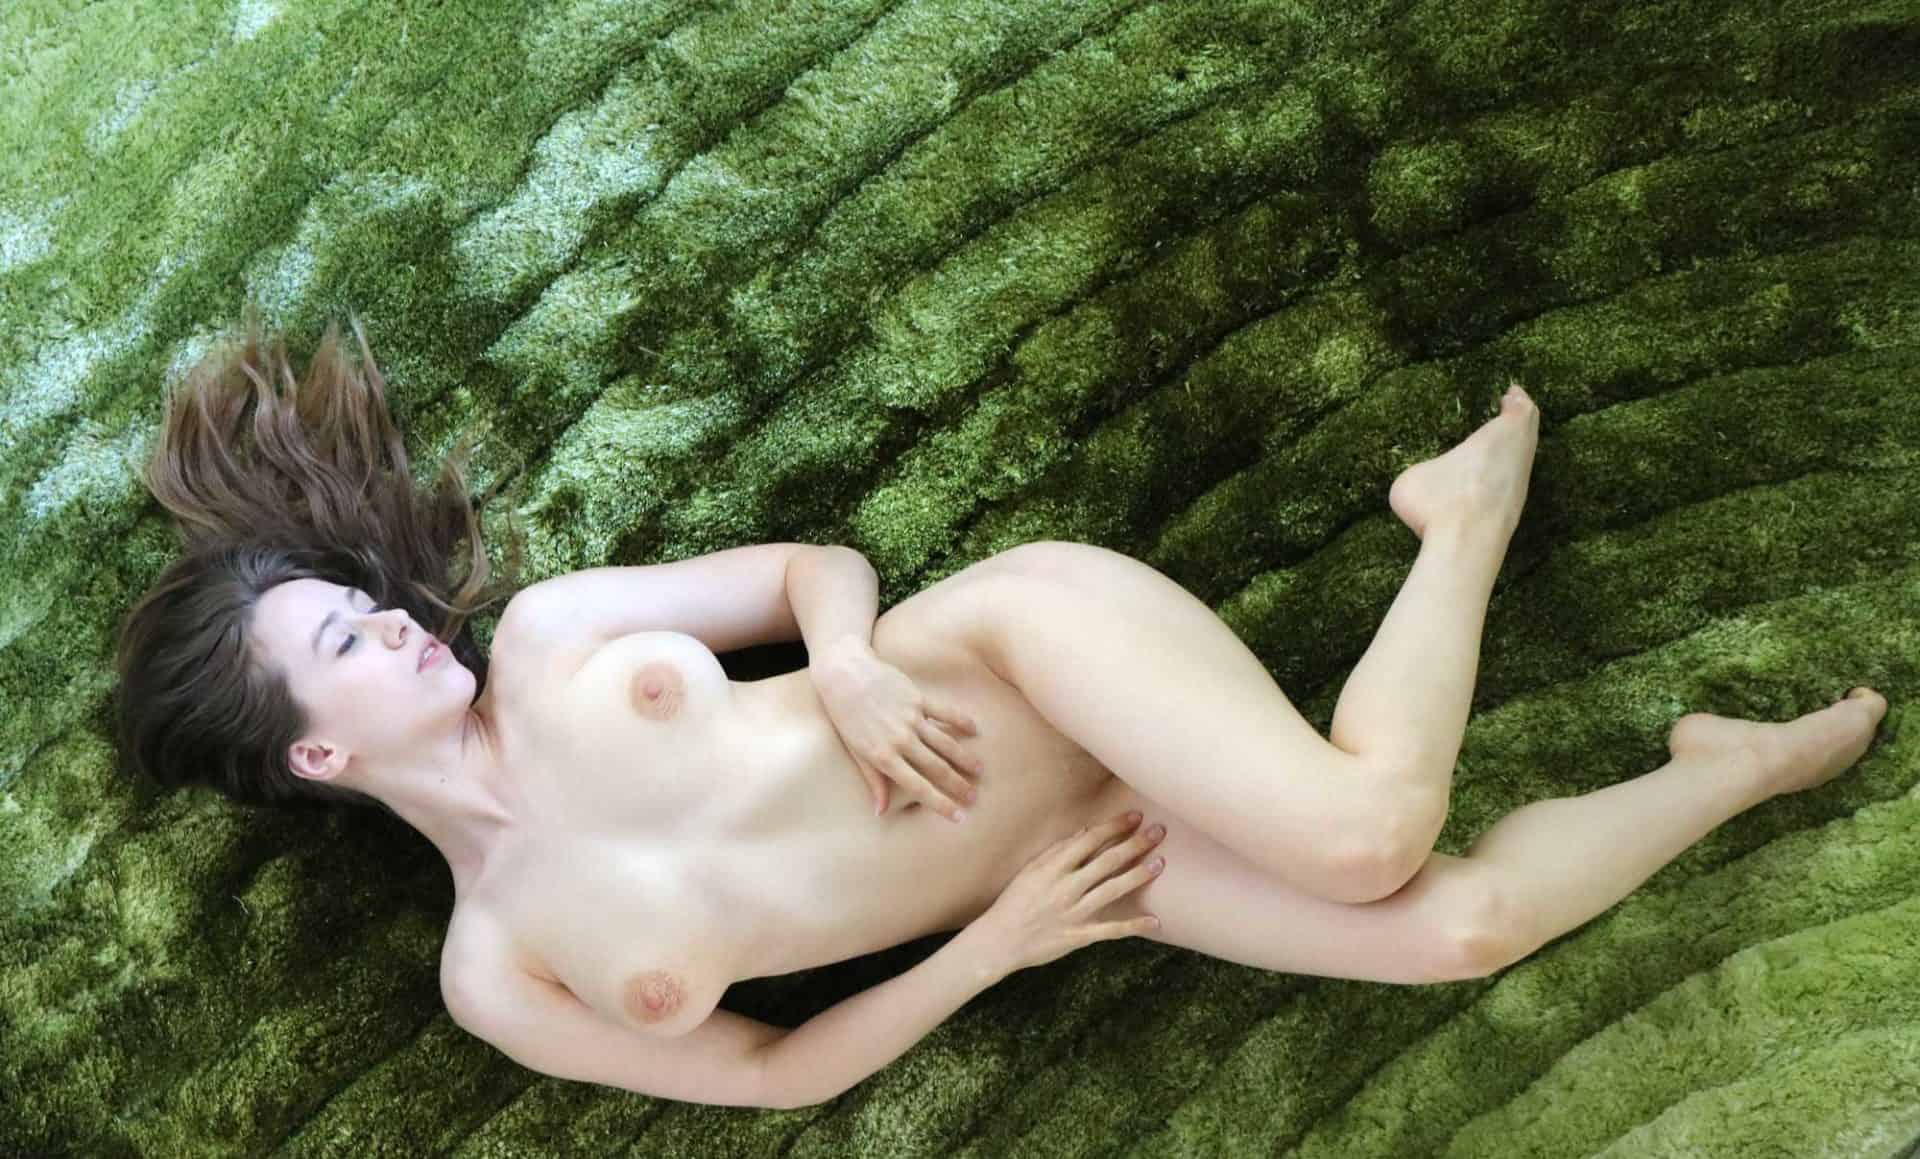 Nude Bendy Taylor on Green